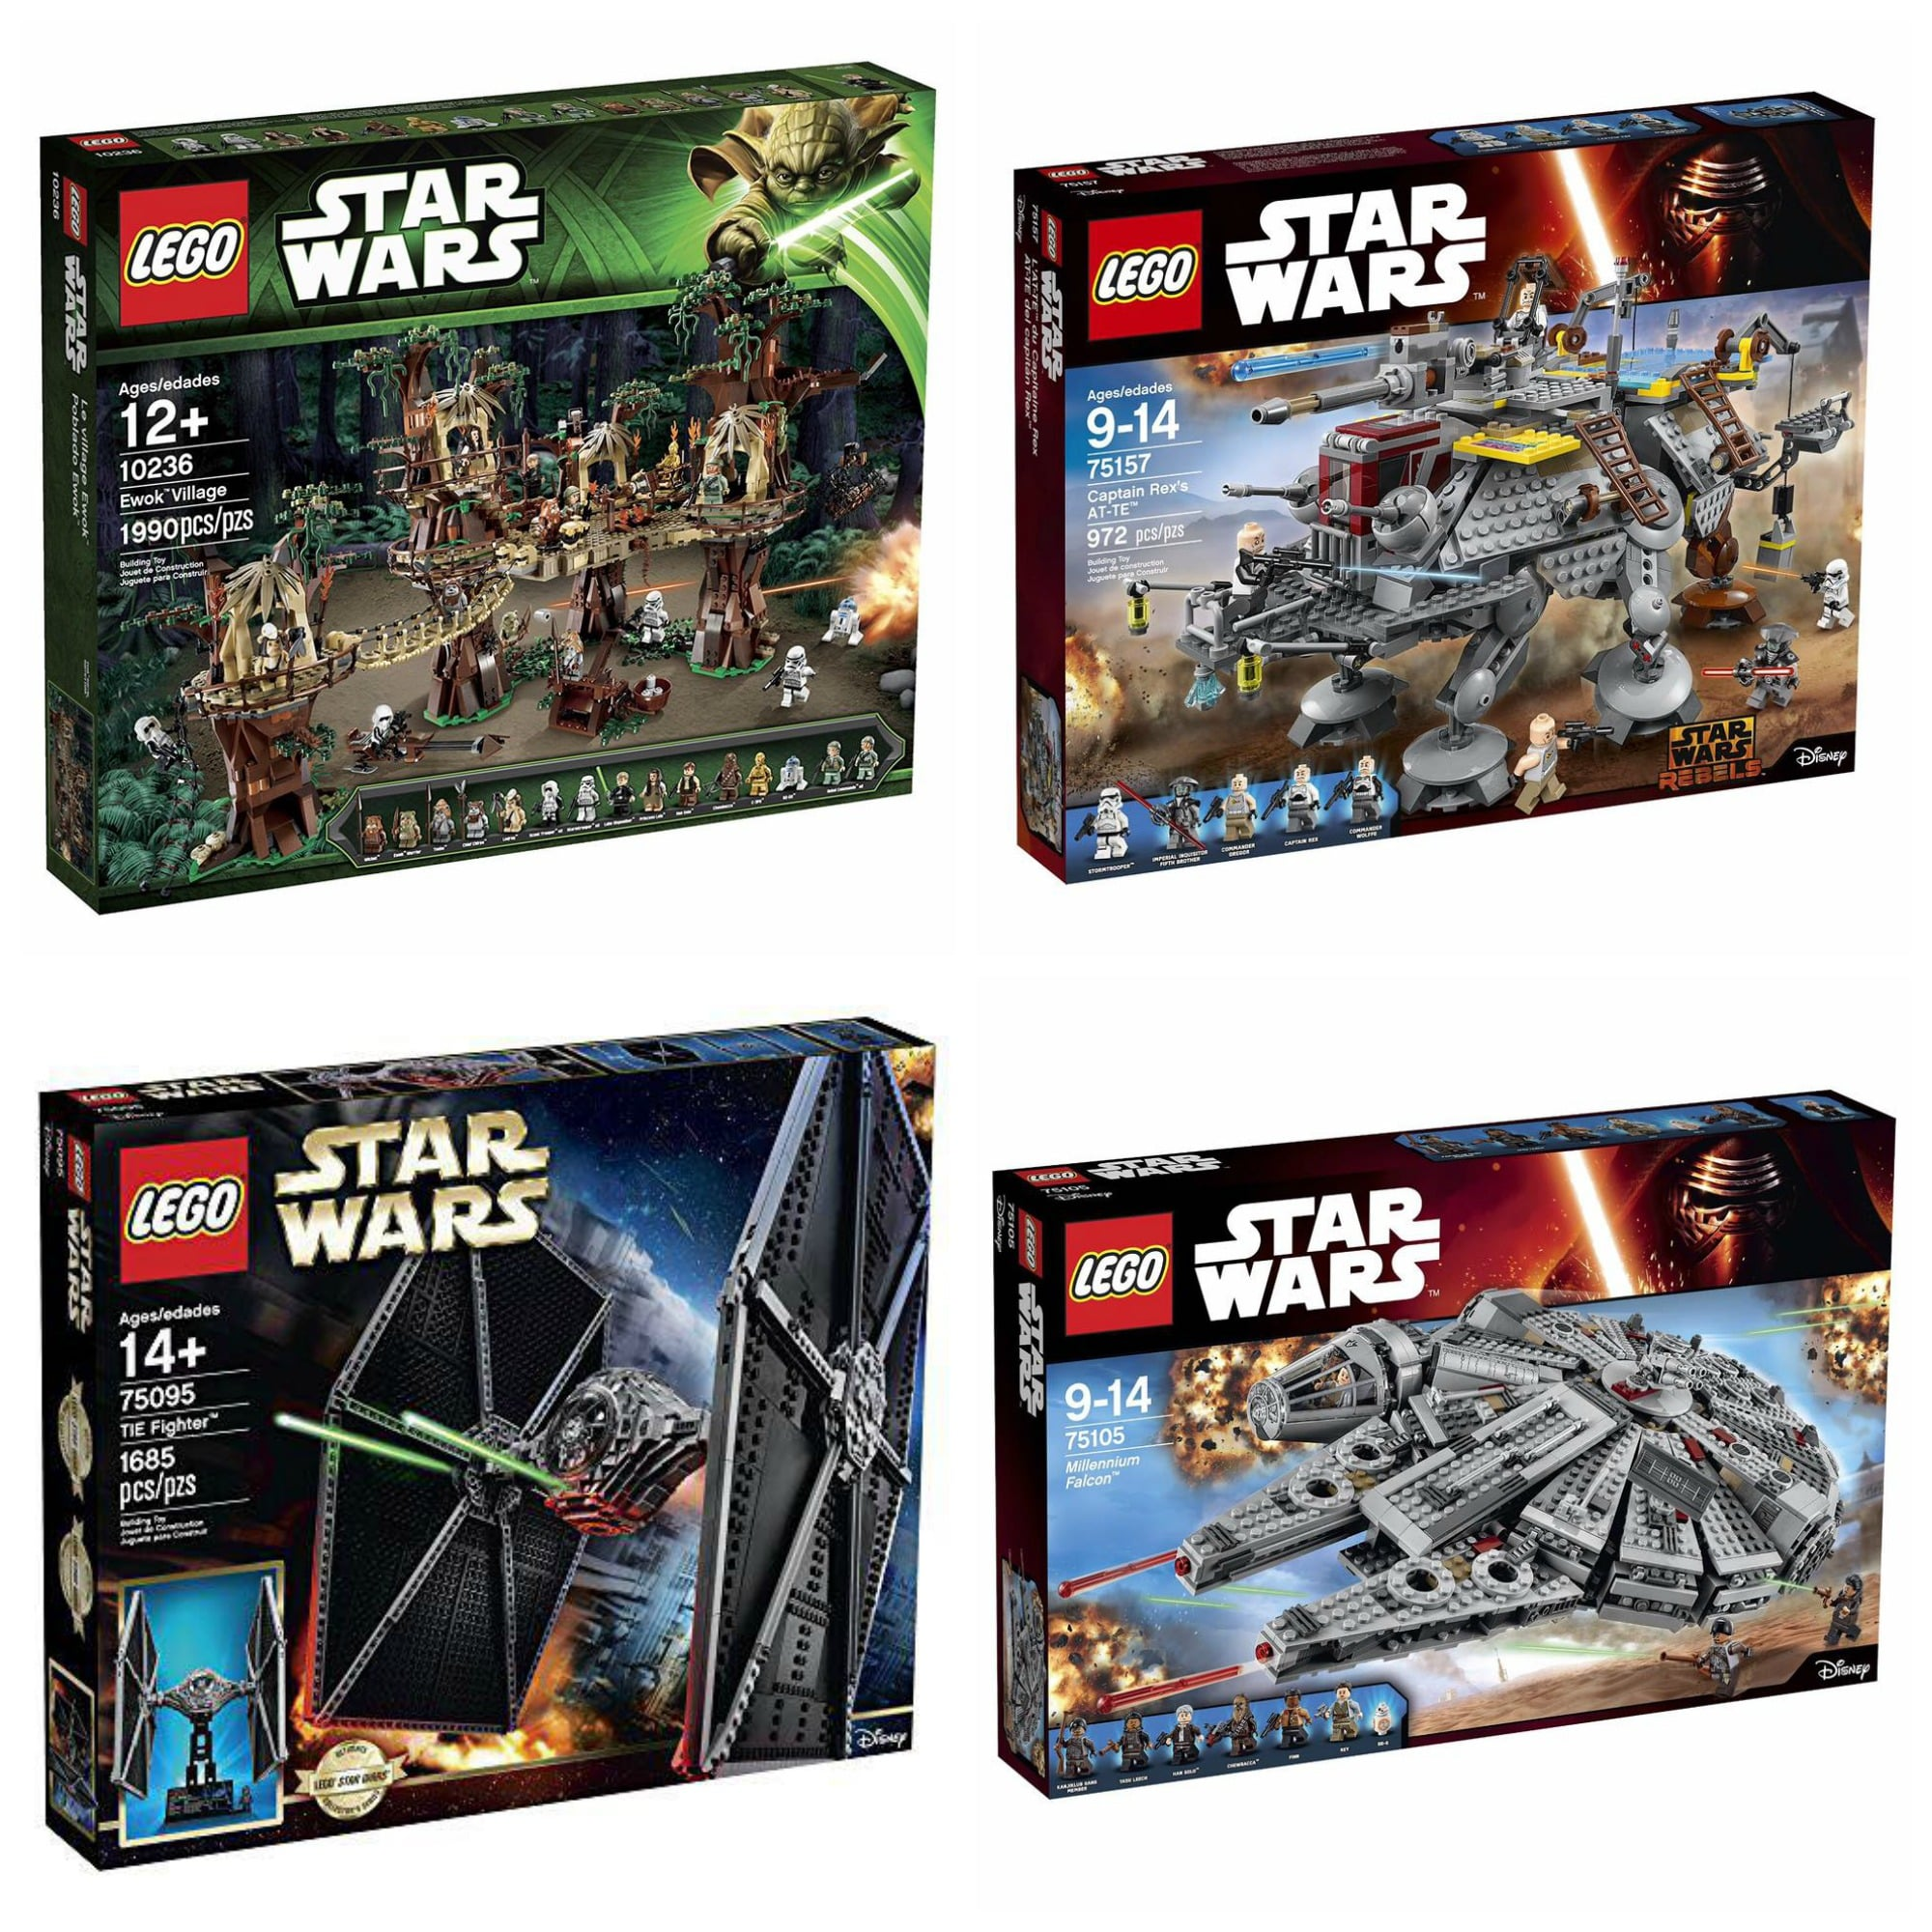 BIG Savings on LEGO Star Wars & LEGO Friends Sets on Amazon and Target.com!!